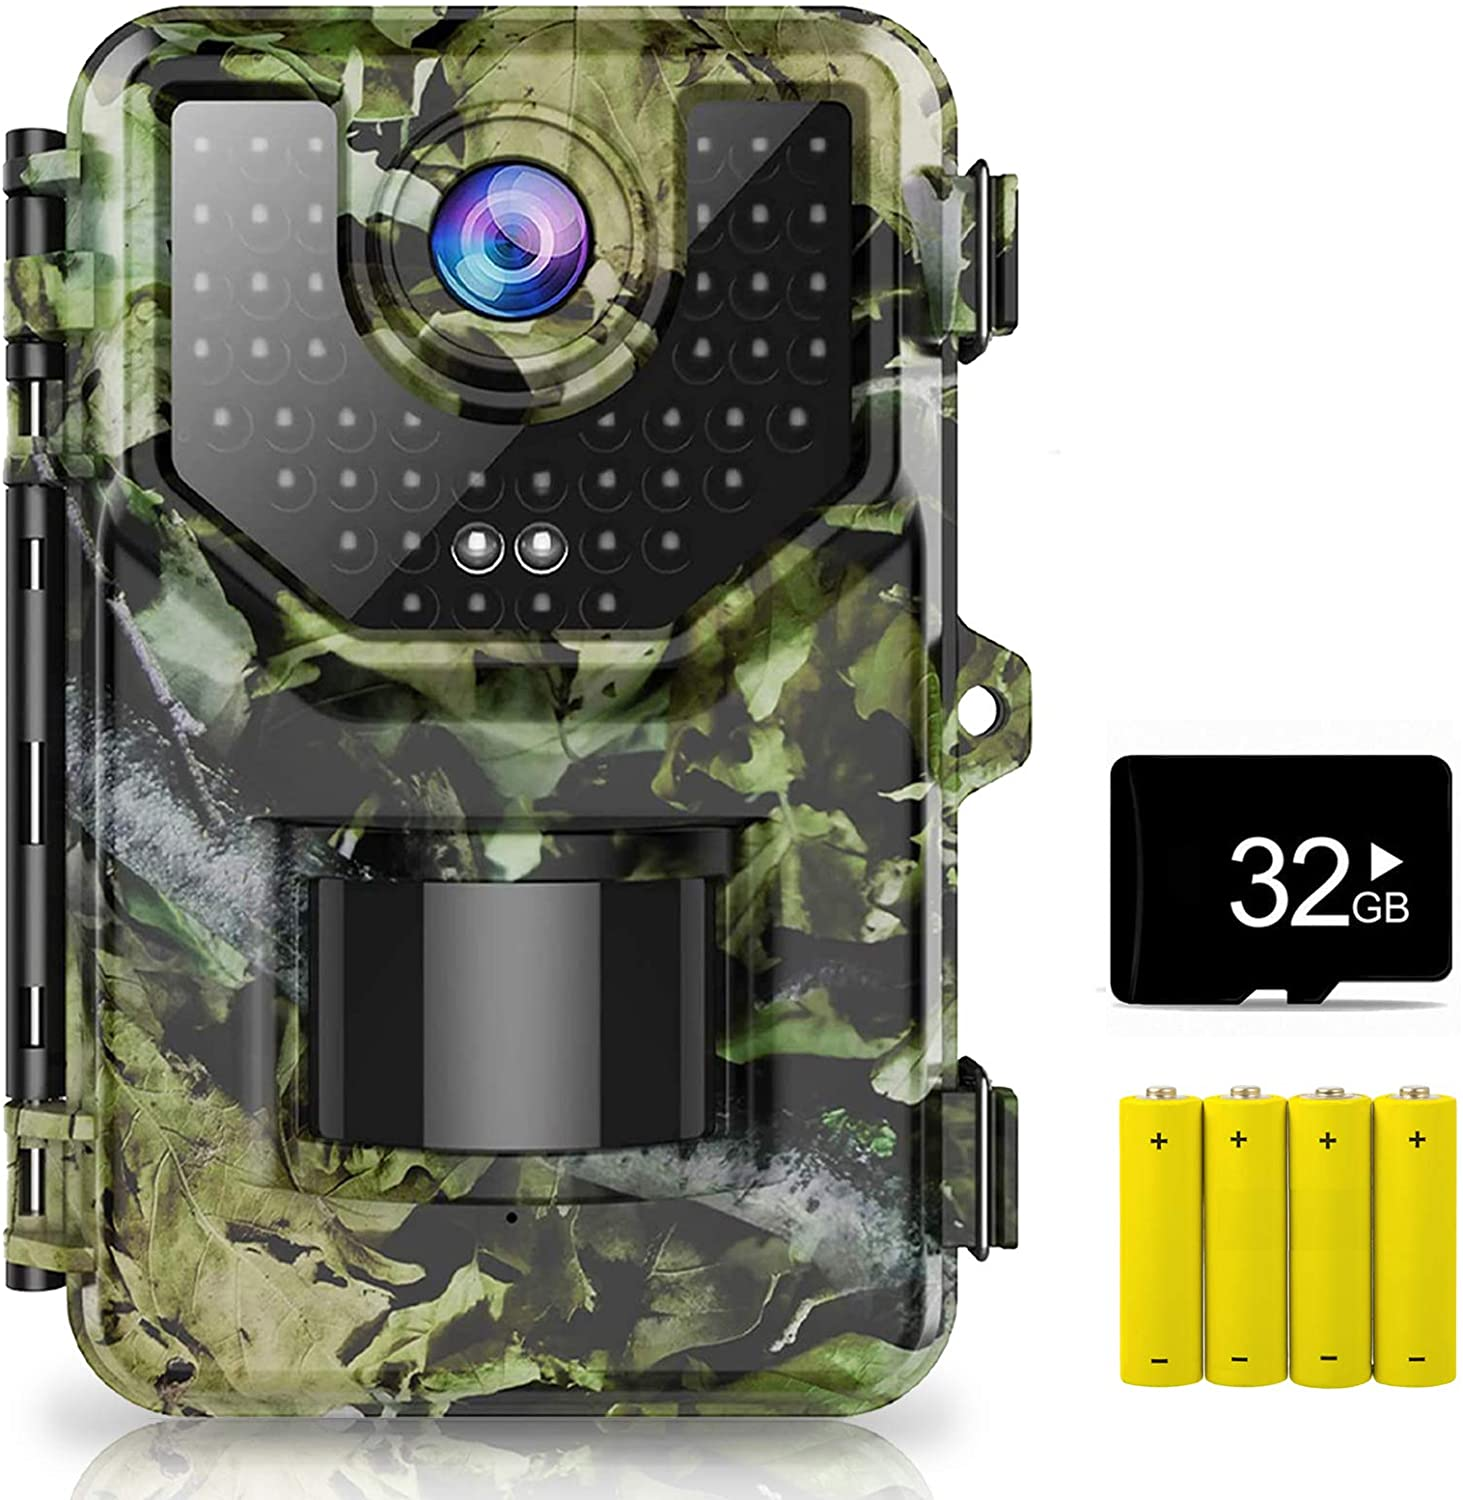 Vikeri Wide-Angle Trail Camera